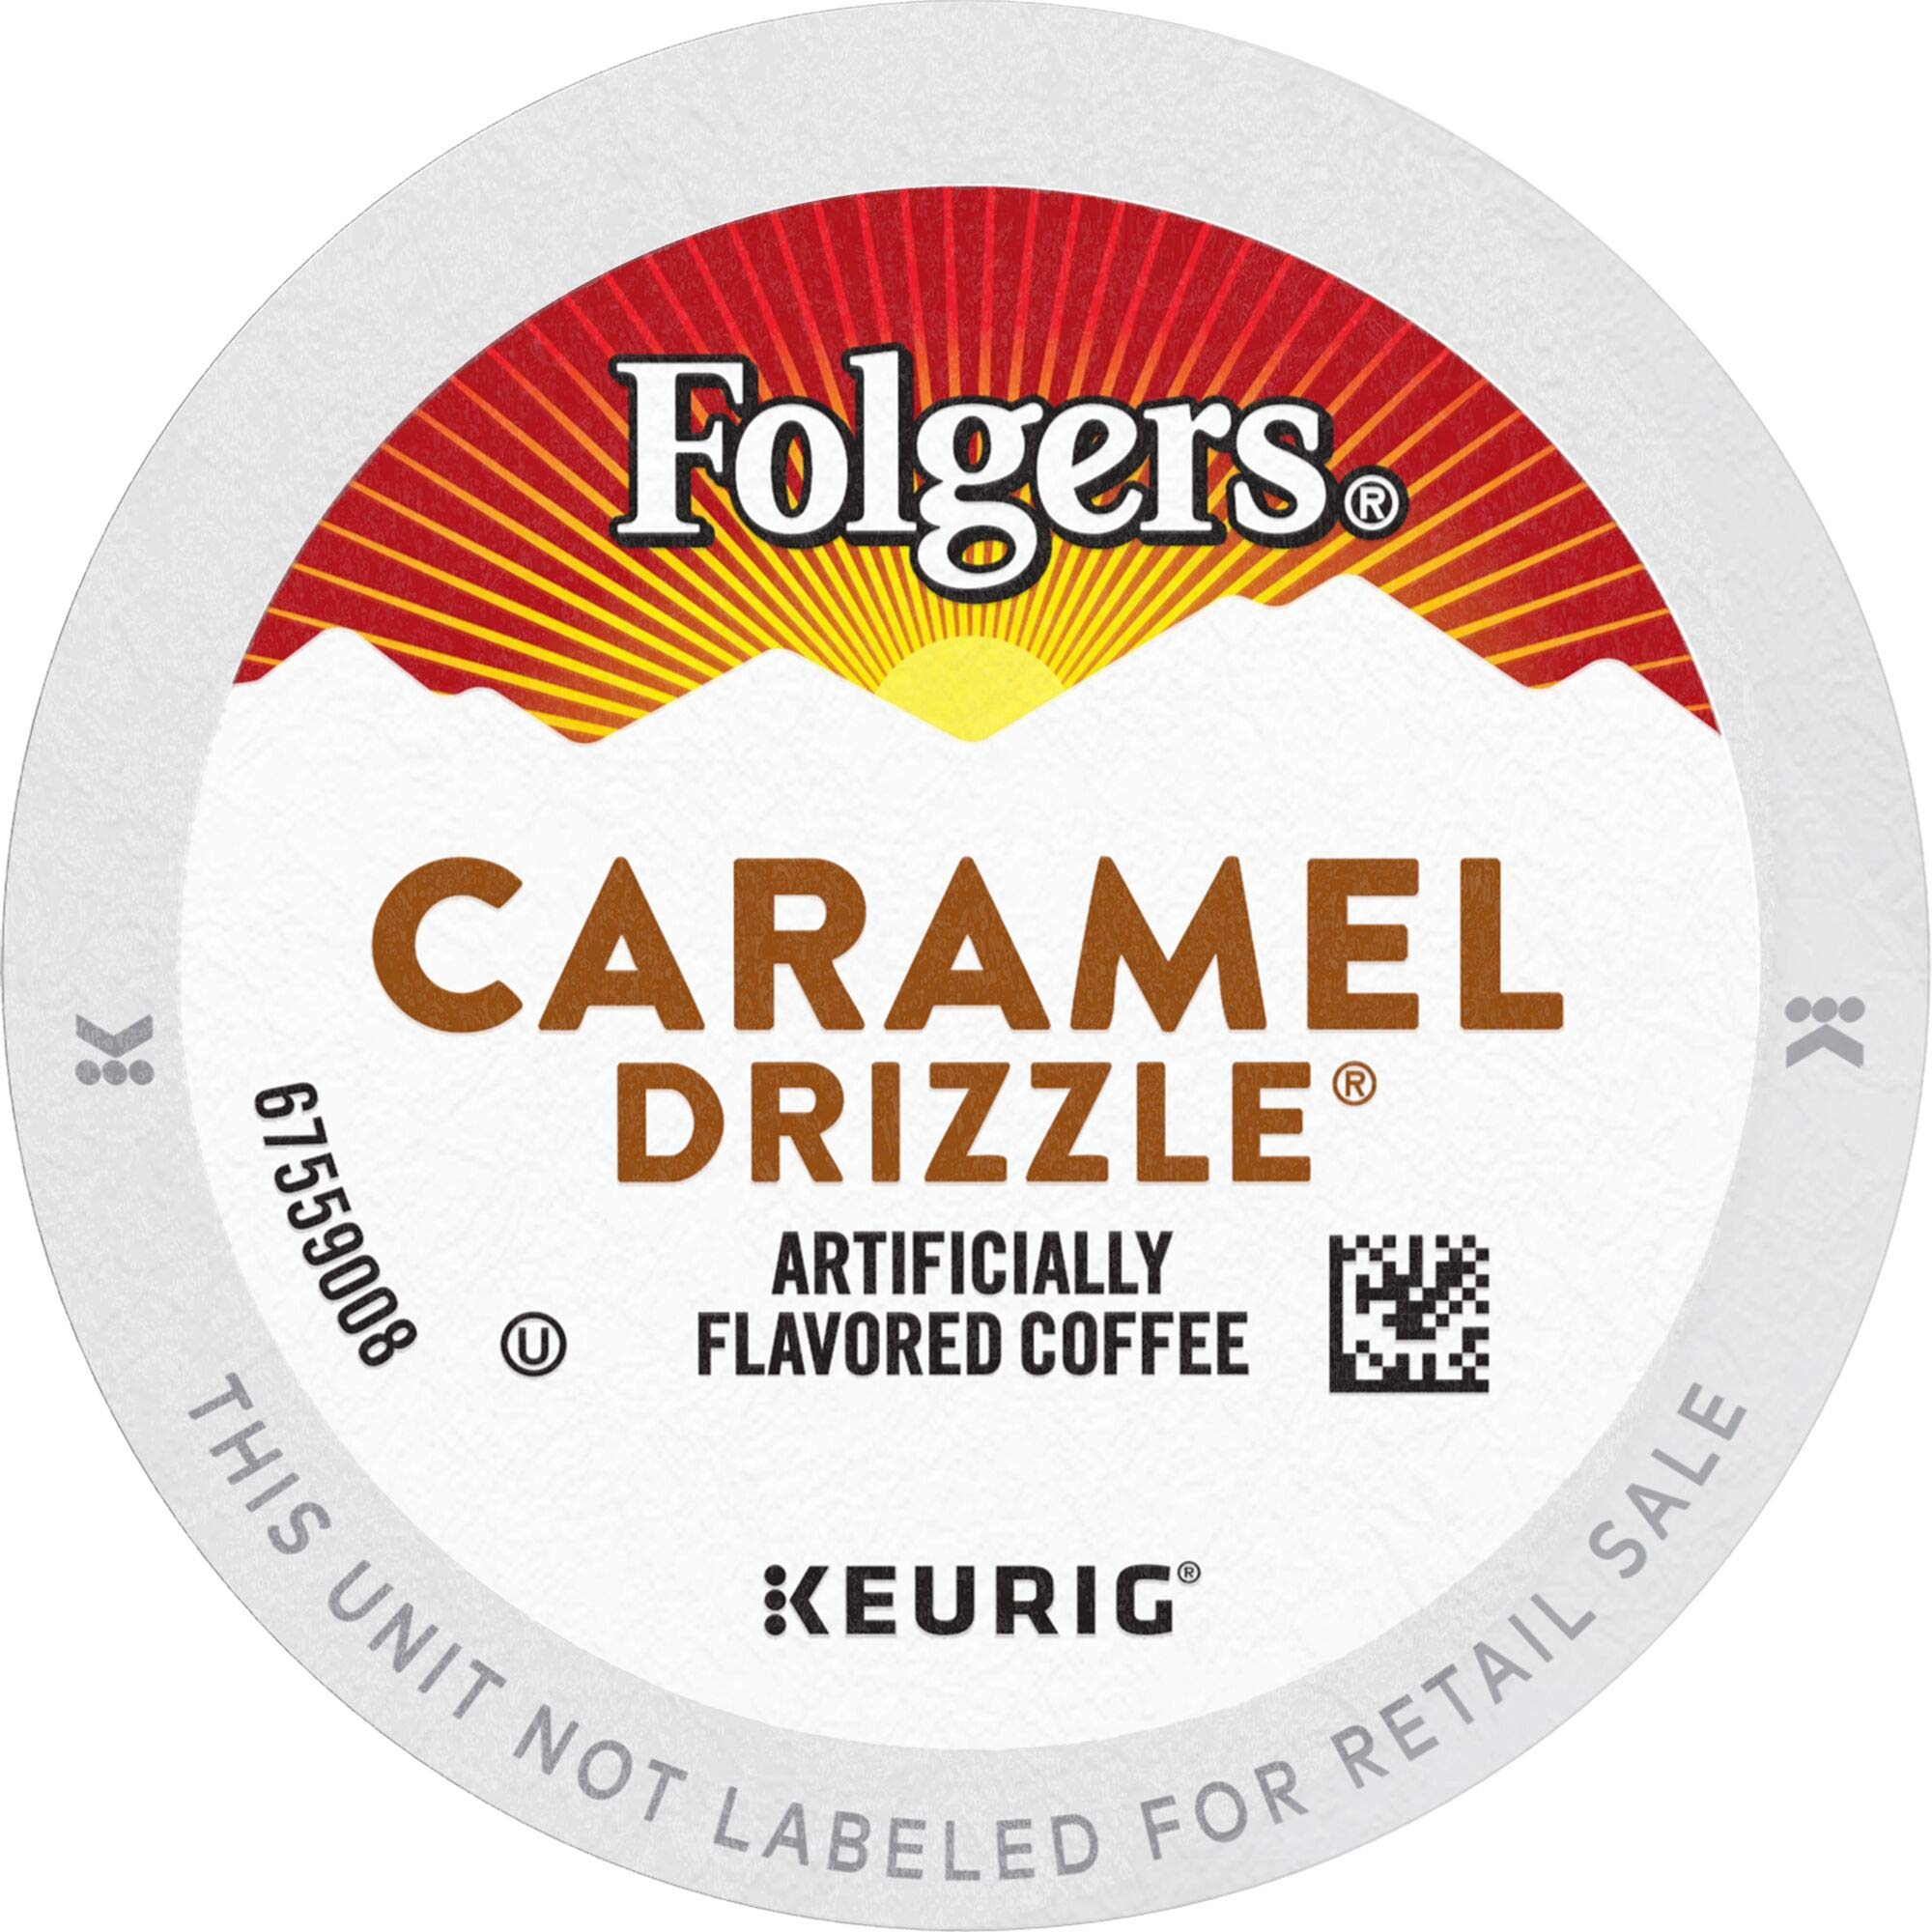 Folgers Caramel Drizzle Flavored Coffee, 24 K Cups for Keurig Coffee Makers